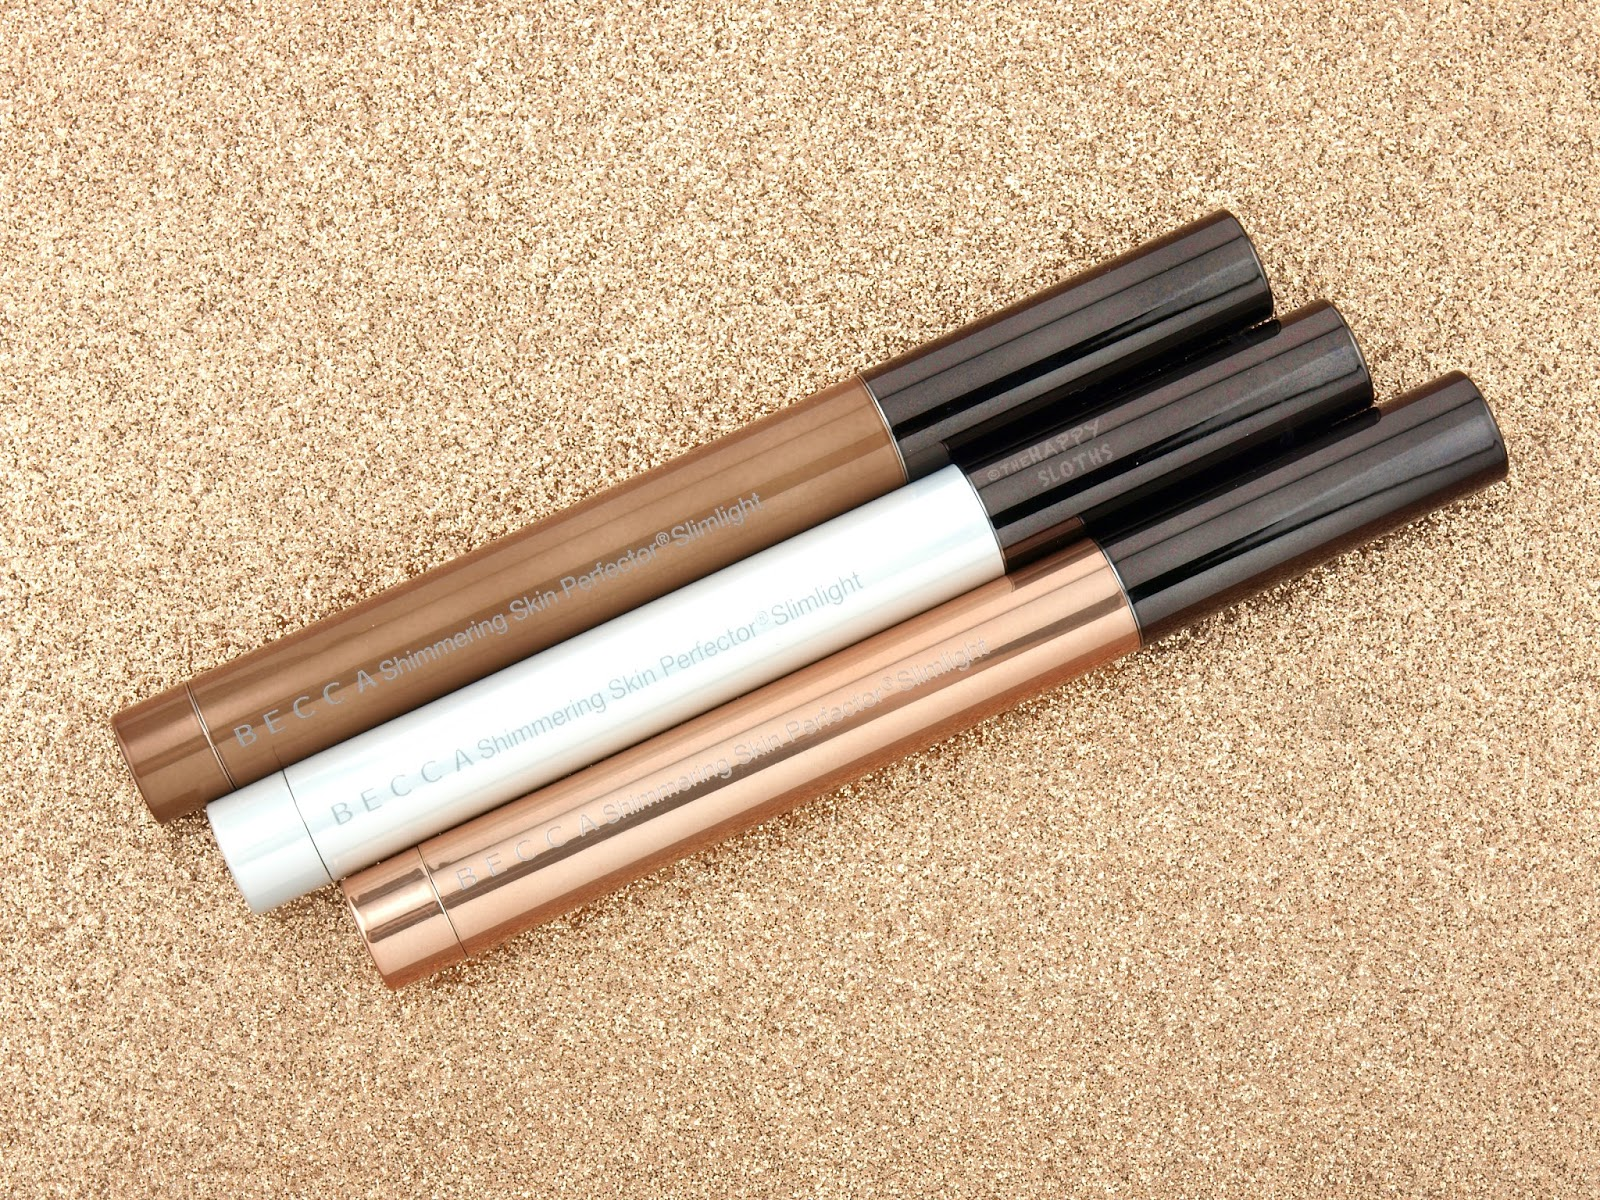 BECCA Shimmering Skin Perfector Slimlight Review and Swatches